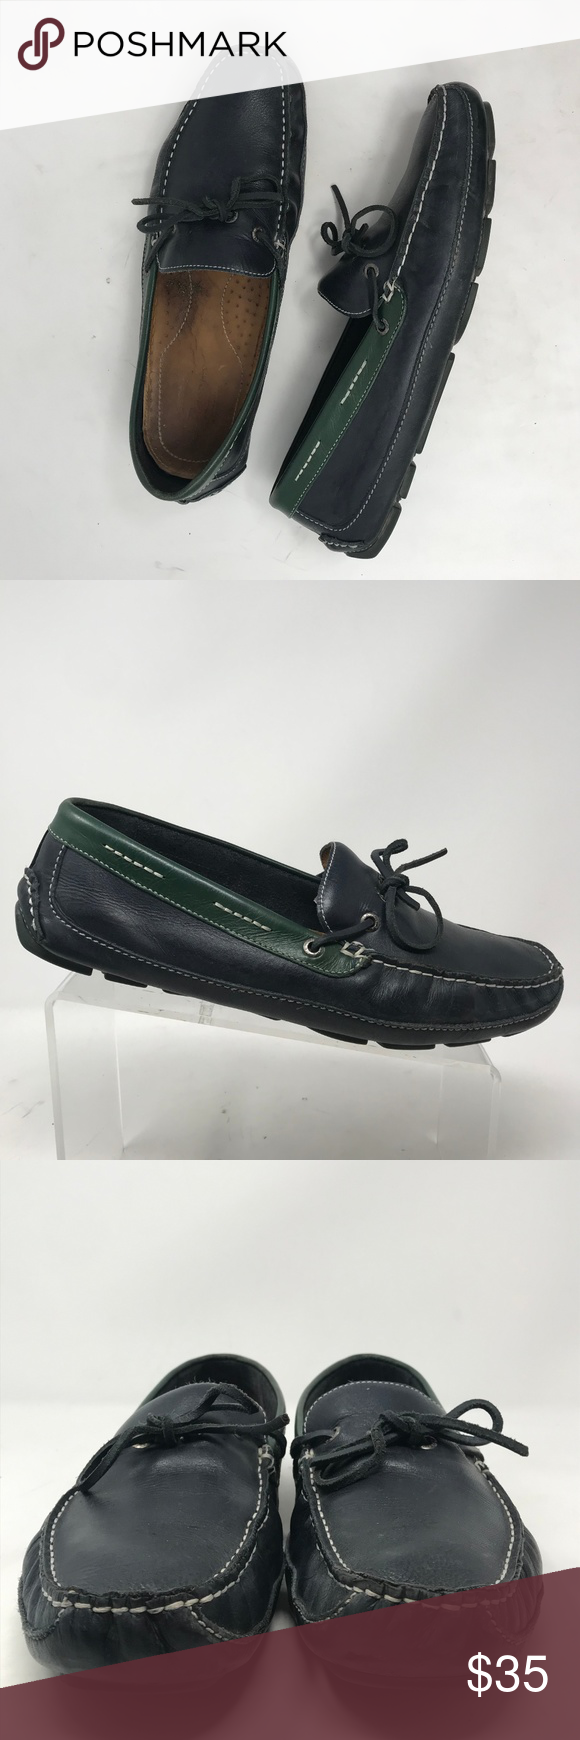 Bass Pisa Navy Blue Drivers Driving Mocs 11 M These are in excellent preowned condition with minor wear!  Please see all pictures as they are the best descriptors.  Brand: Bass Style: Loafers  Color: Navy Blue, Green Material: Leather Size: 11 Sole: 4-1/4